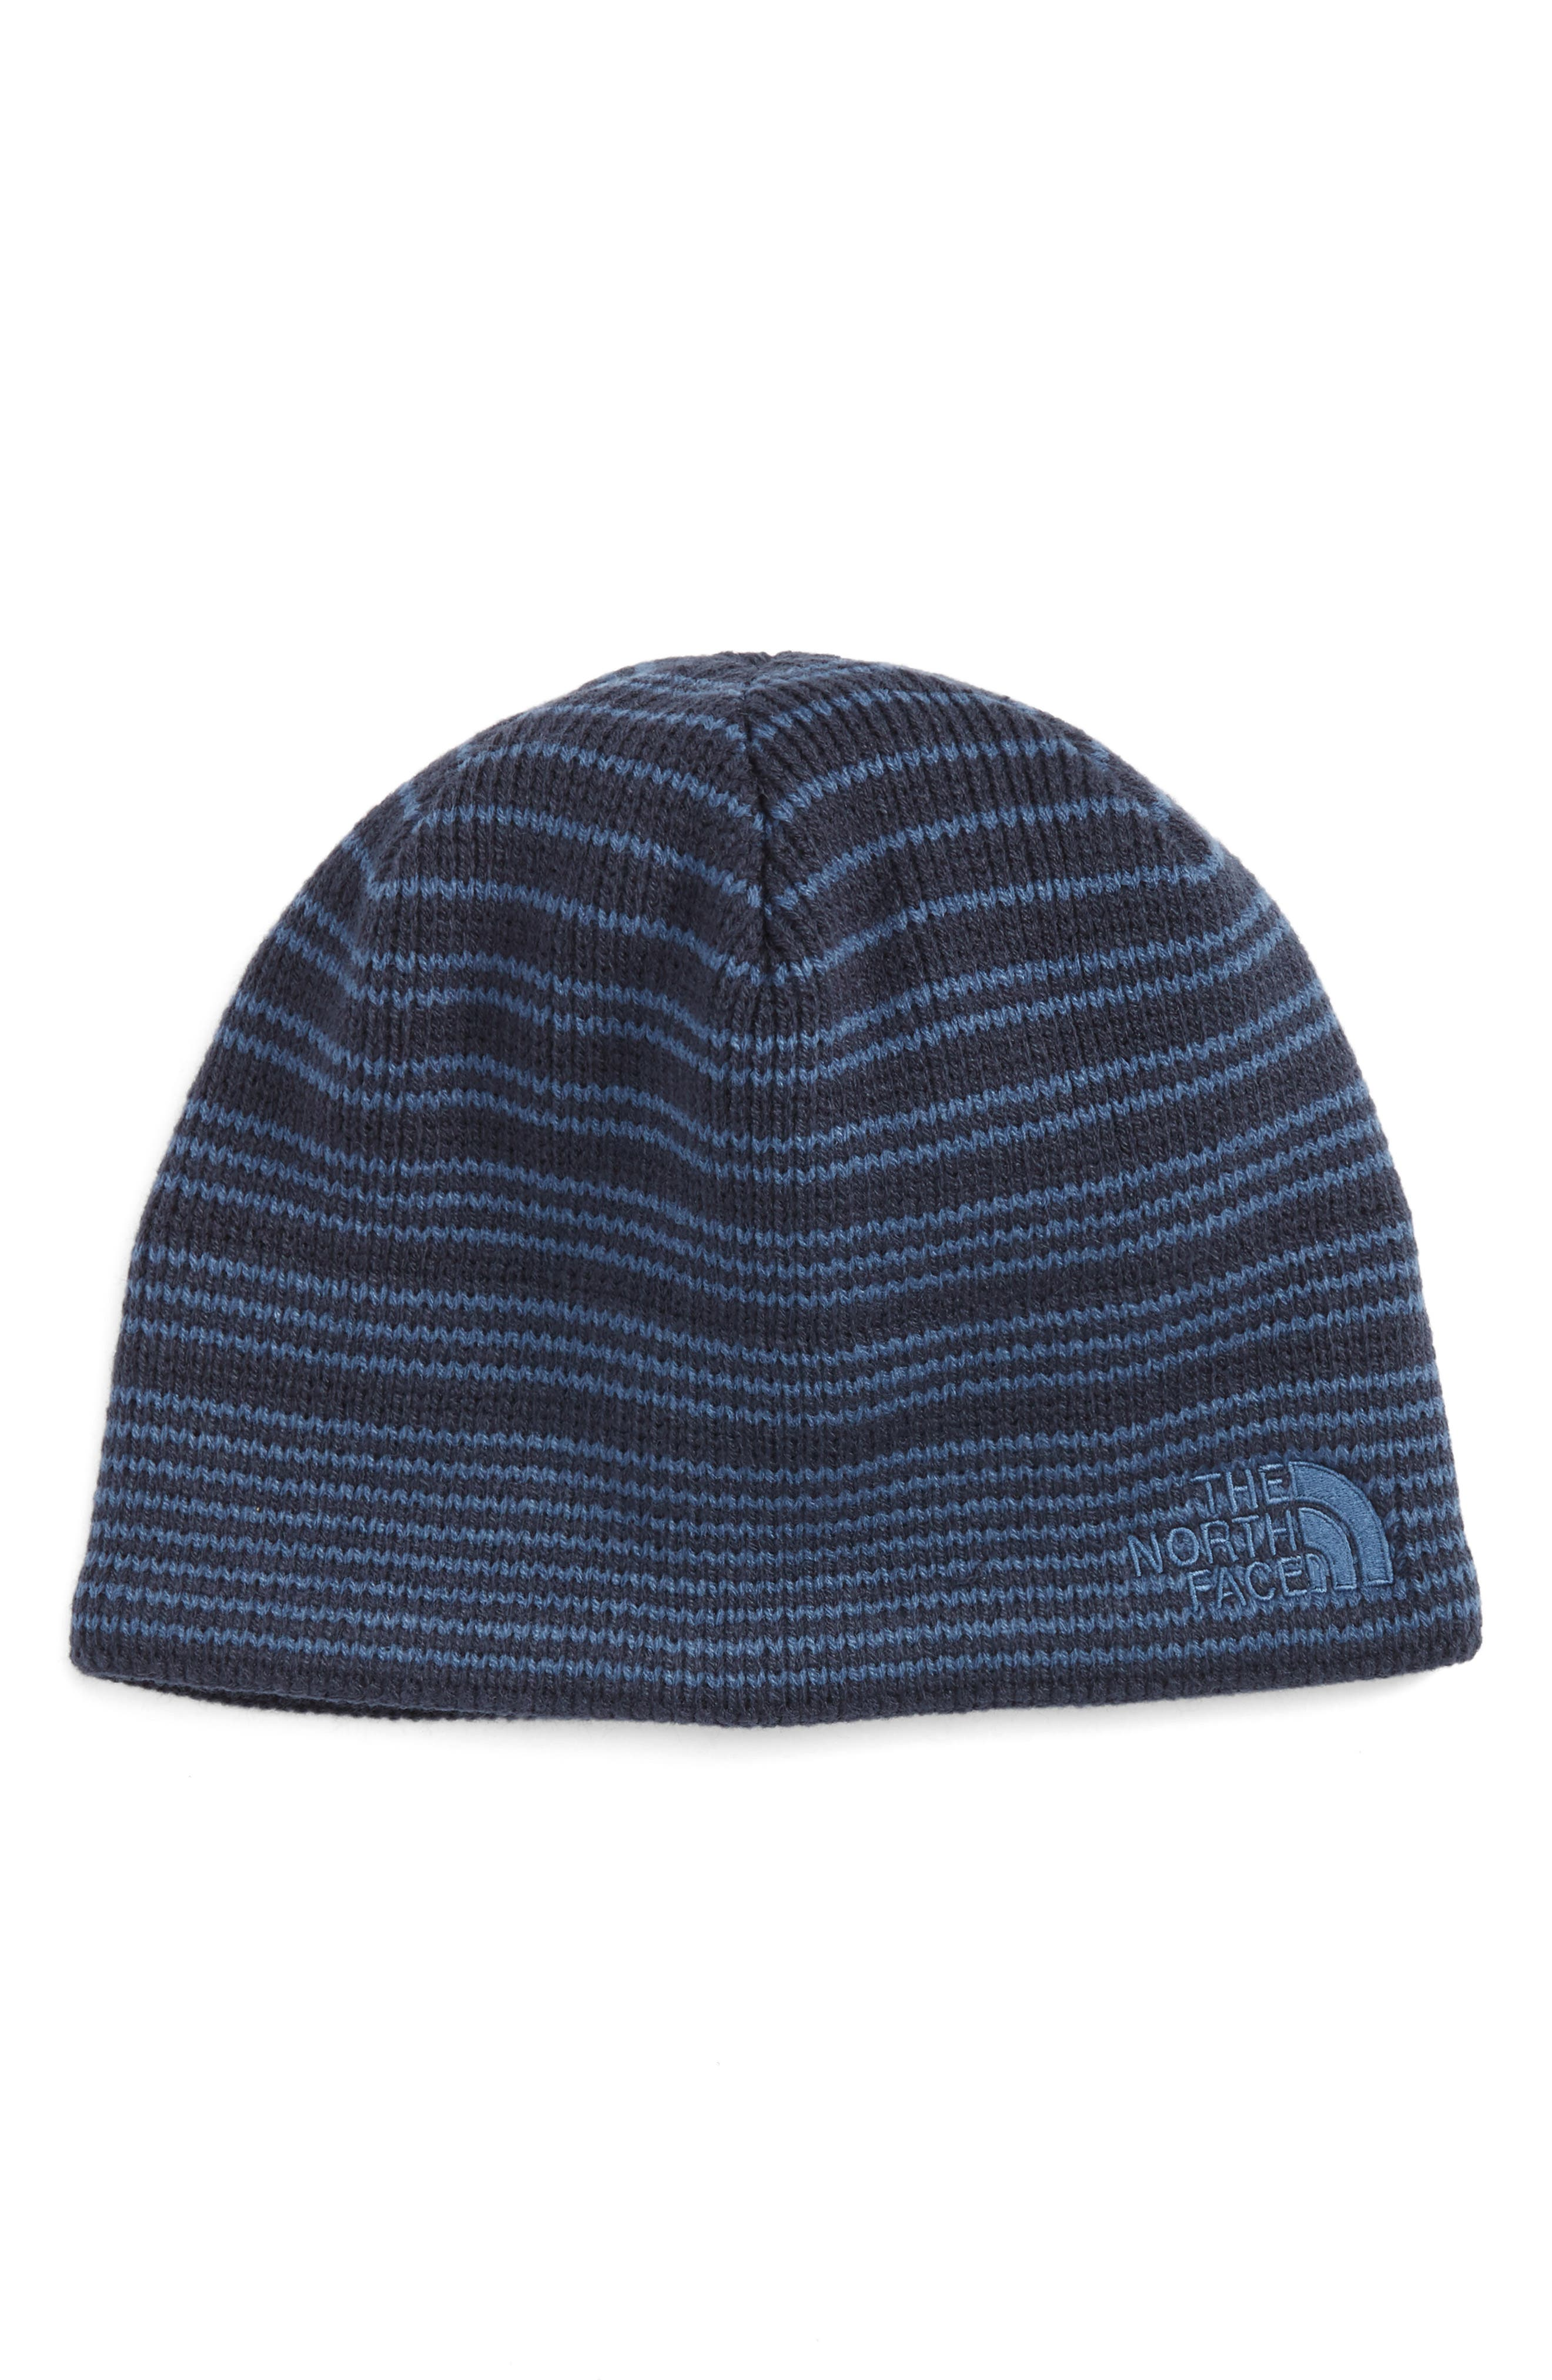 Alternate Image 1 Selected - The North Face 'Bones' Microfleece Beanie